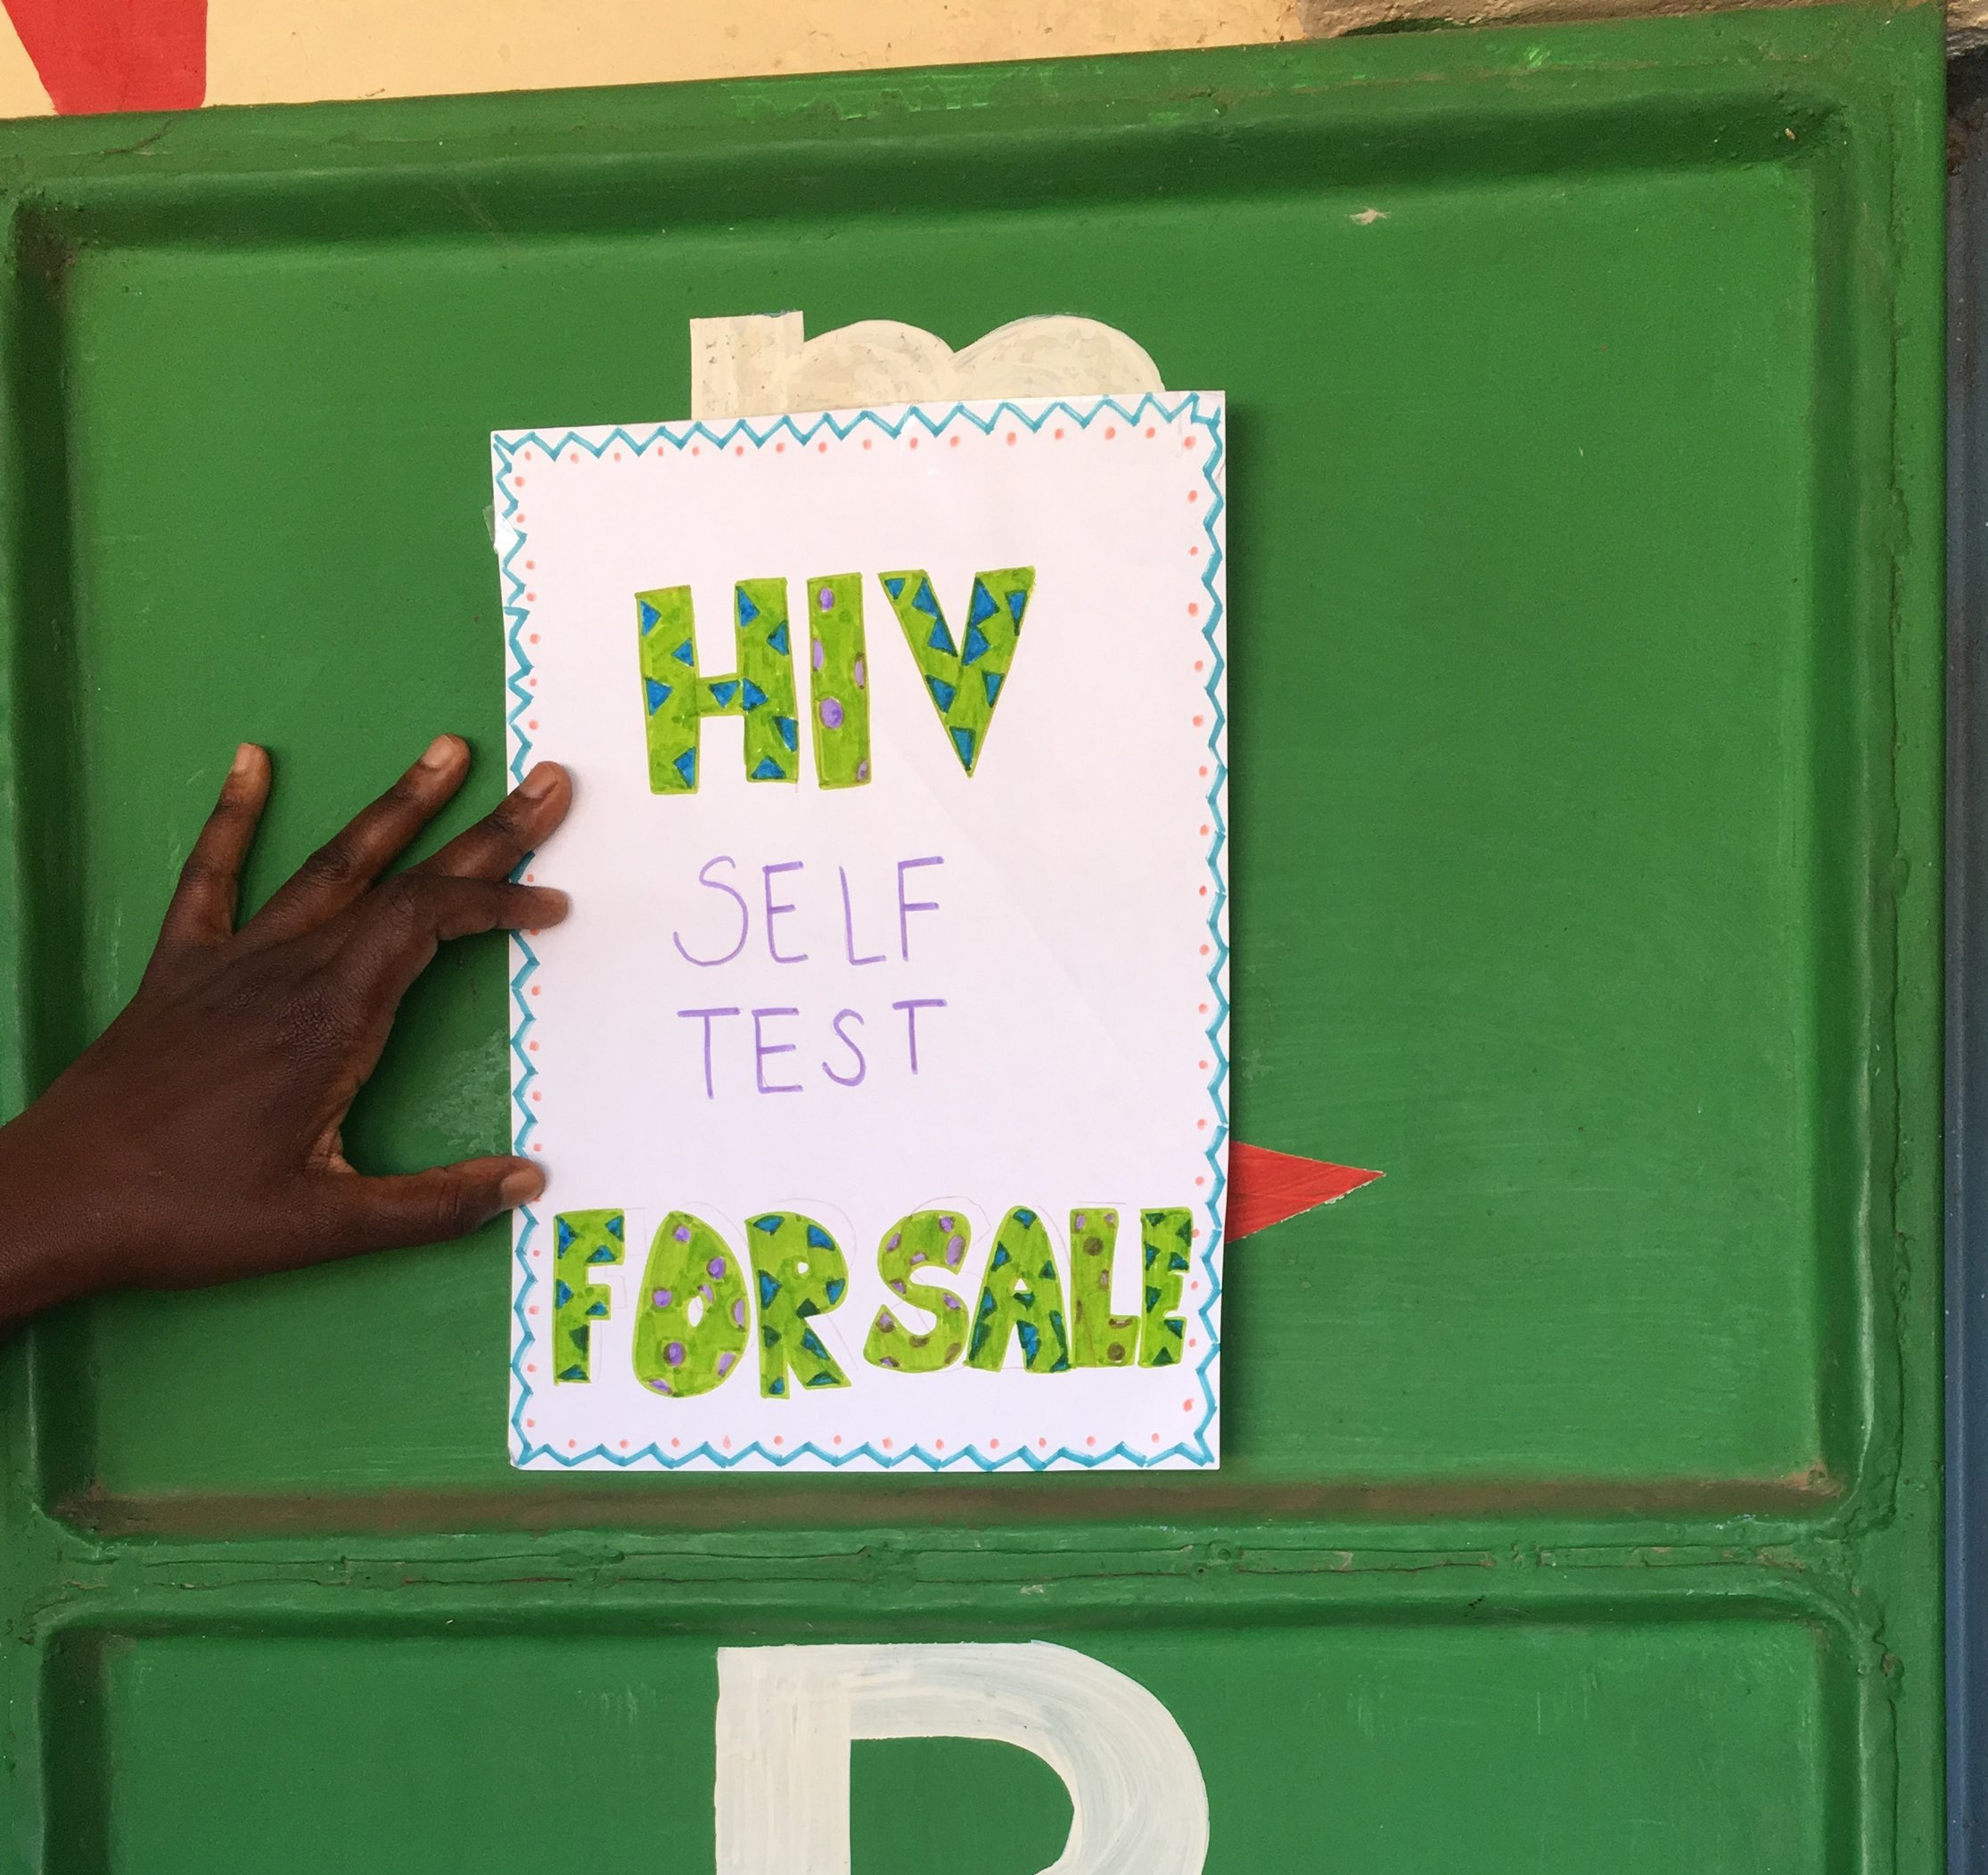 YLABS:Transforming the market for HIV self-testing - My role: Project Lead Dates: May - Oct 2018Our US-based team of an epidemiologist, visual designer, design researcher, HIV research specialist and myself spent the summer in Kenya, along with local team of six researchers to interview and prototype with over two hundred young men and women.Key deliverables: Research plan; theory of change; design research insights; prototype ideas; customized KPIs for prototype evaluation; summary of prototyping results; final prototype pitch with live prototyping results.